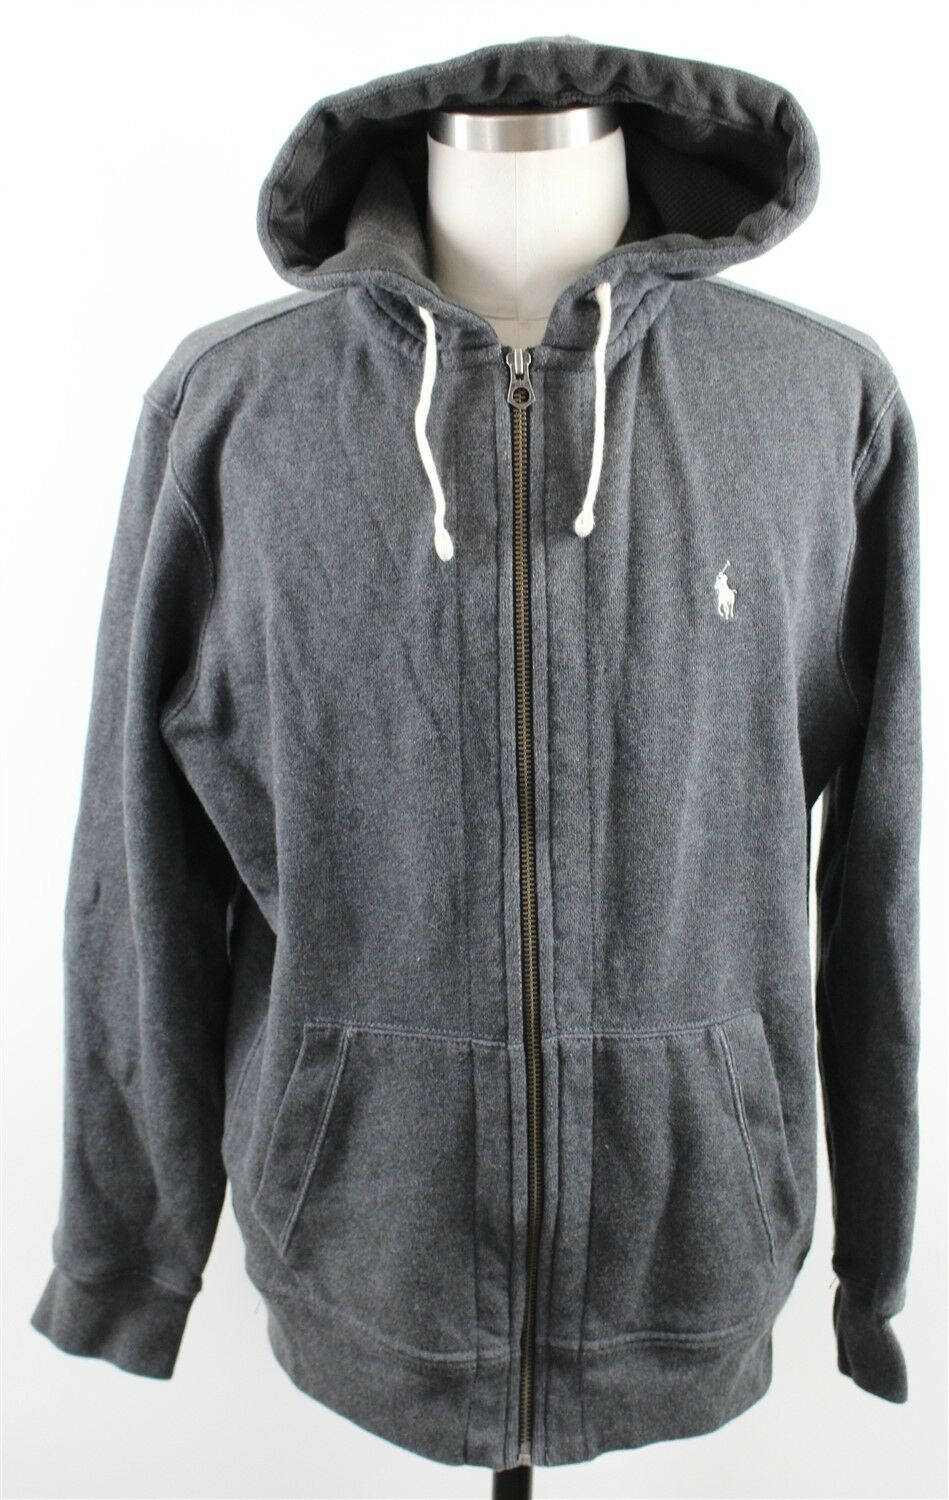 NEW Polo Ralph Lauren Full Zip Fleece Hoodie  Herren XL grau Cotton Polyester